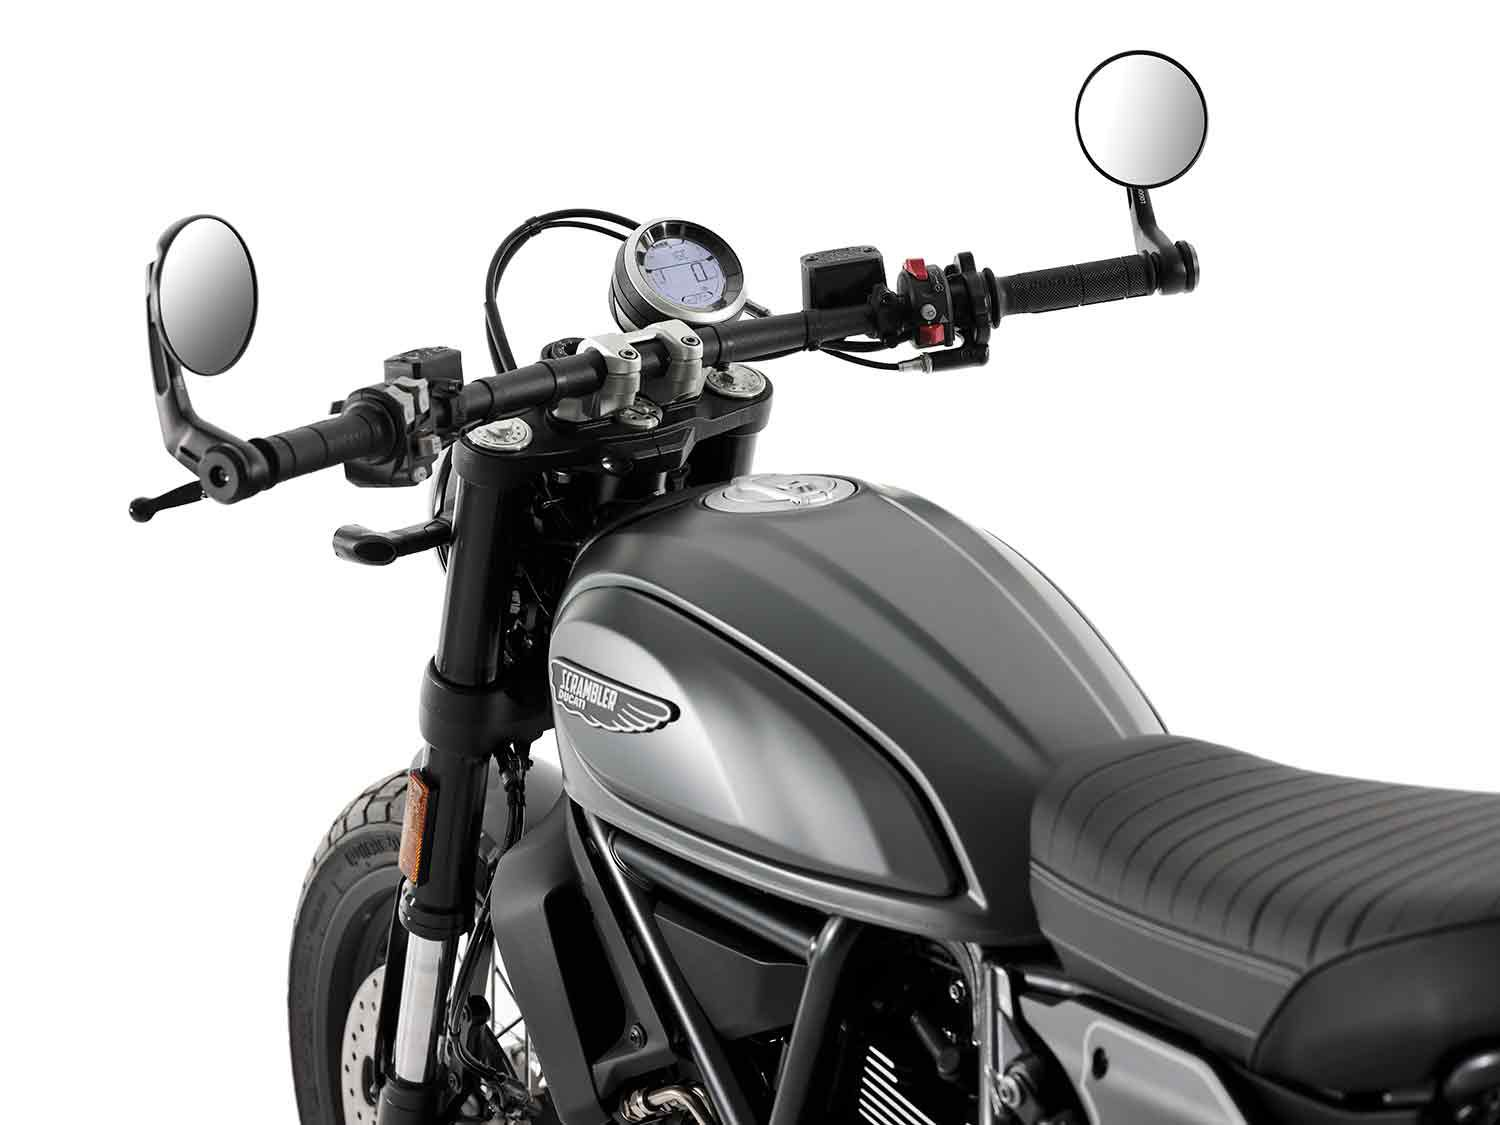 The Nightshift borrows its handlebars from the 1100 PRO and its mirrors from the Cafe Racer.